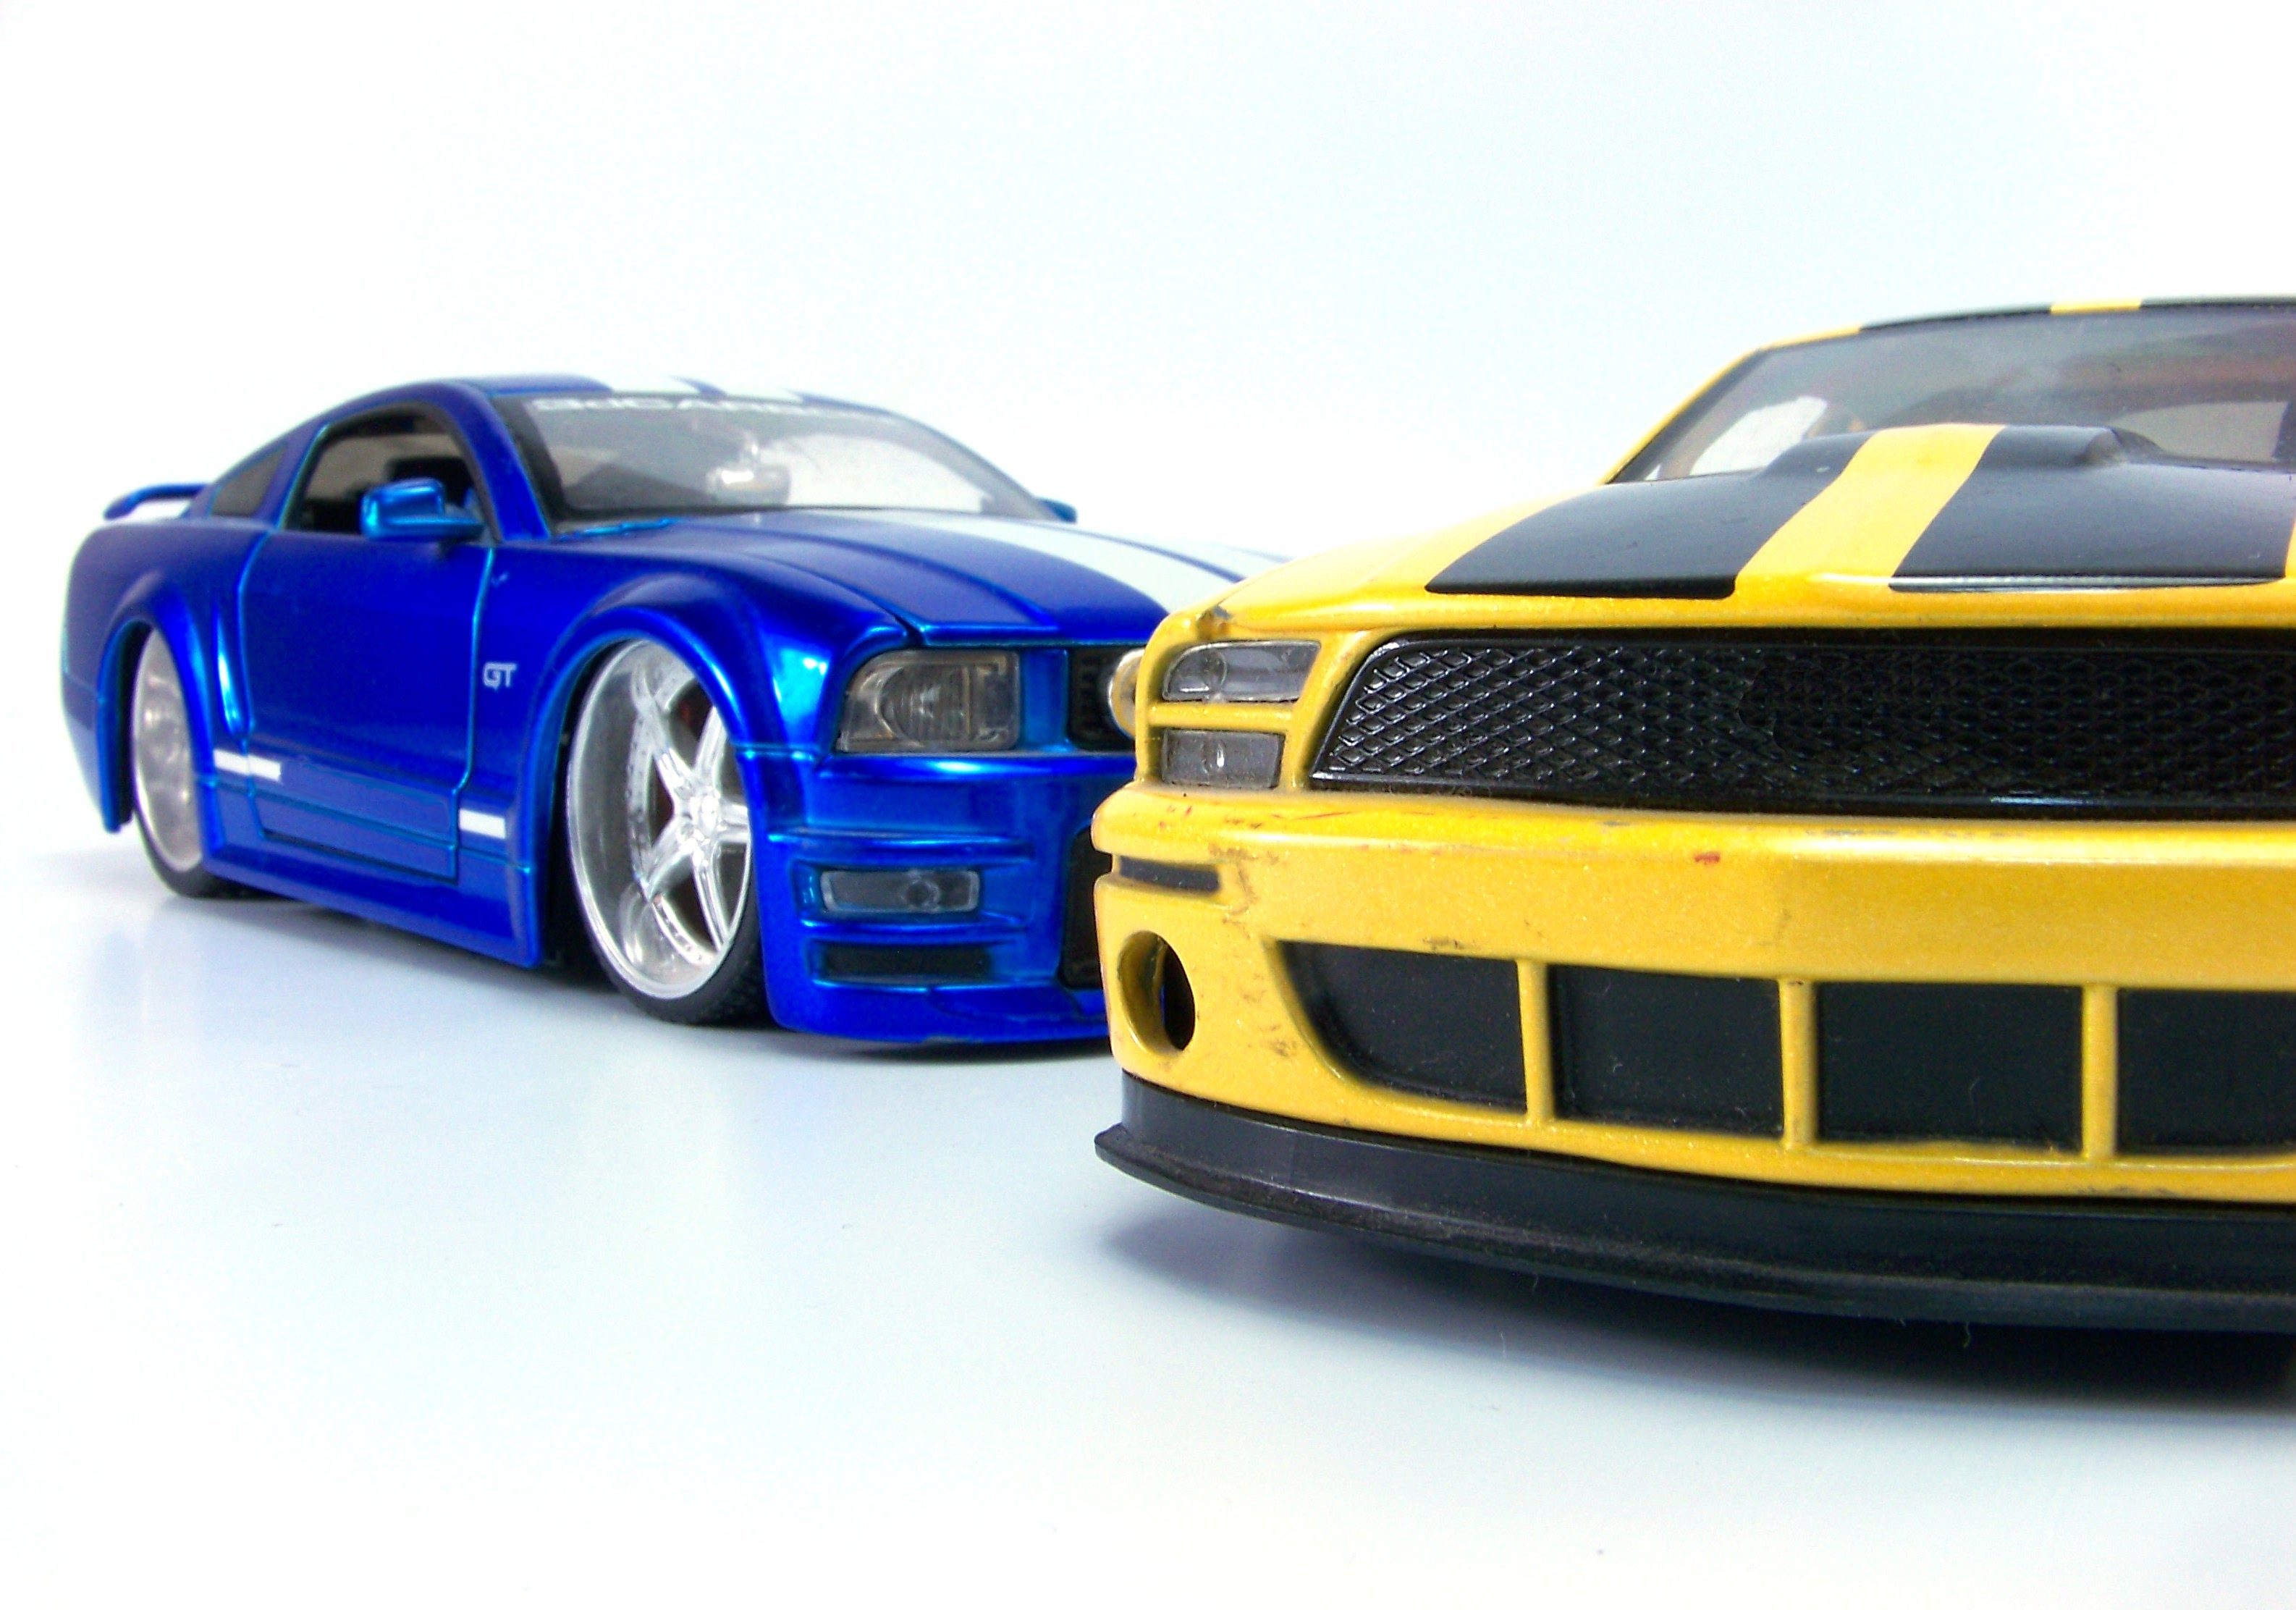 Toy cars, American, Sport, Power, Race, HQ Photo